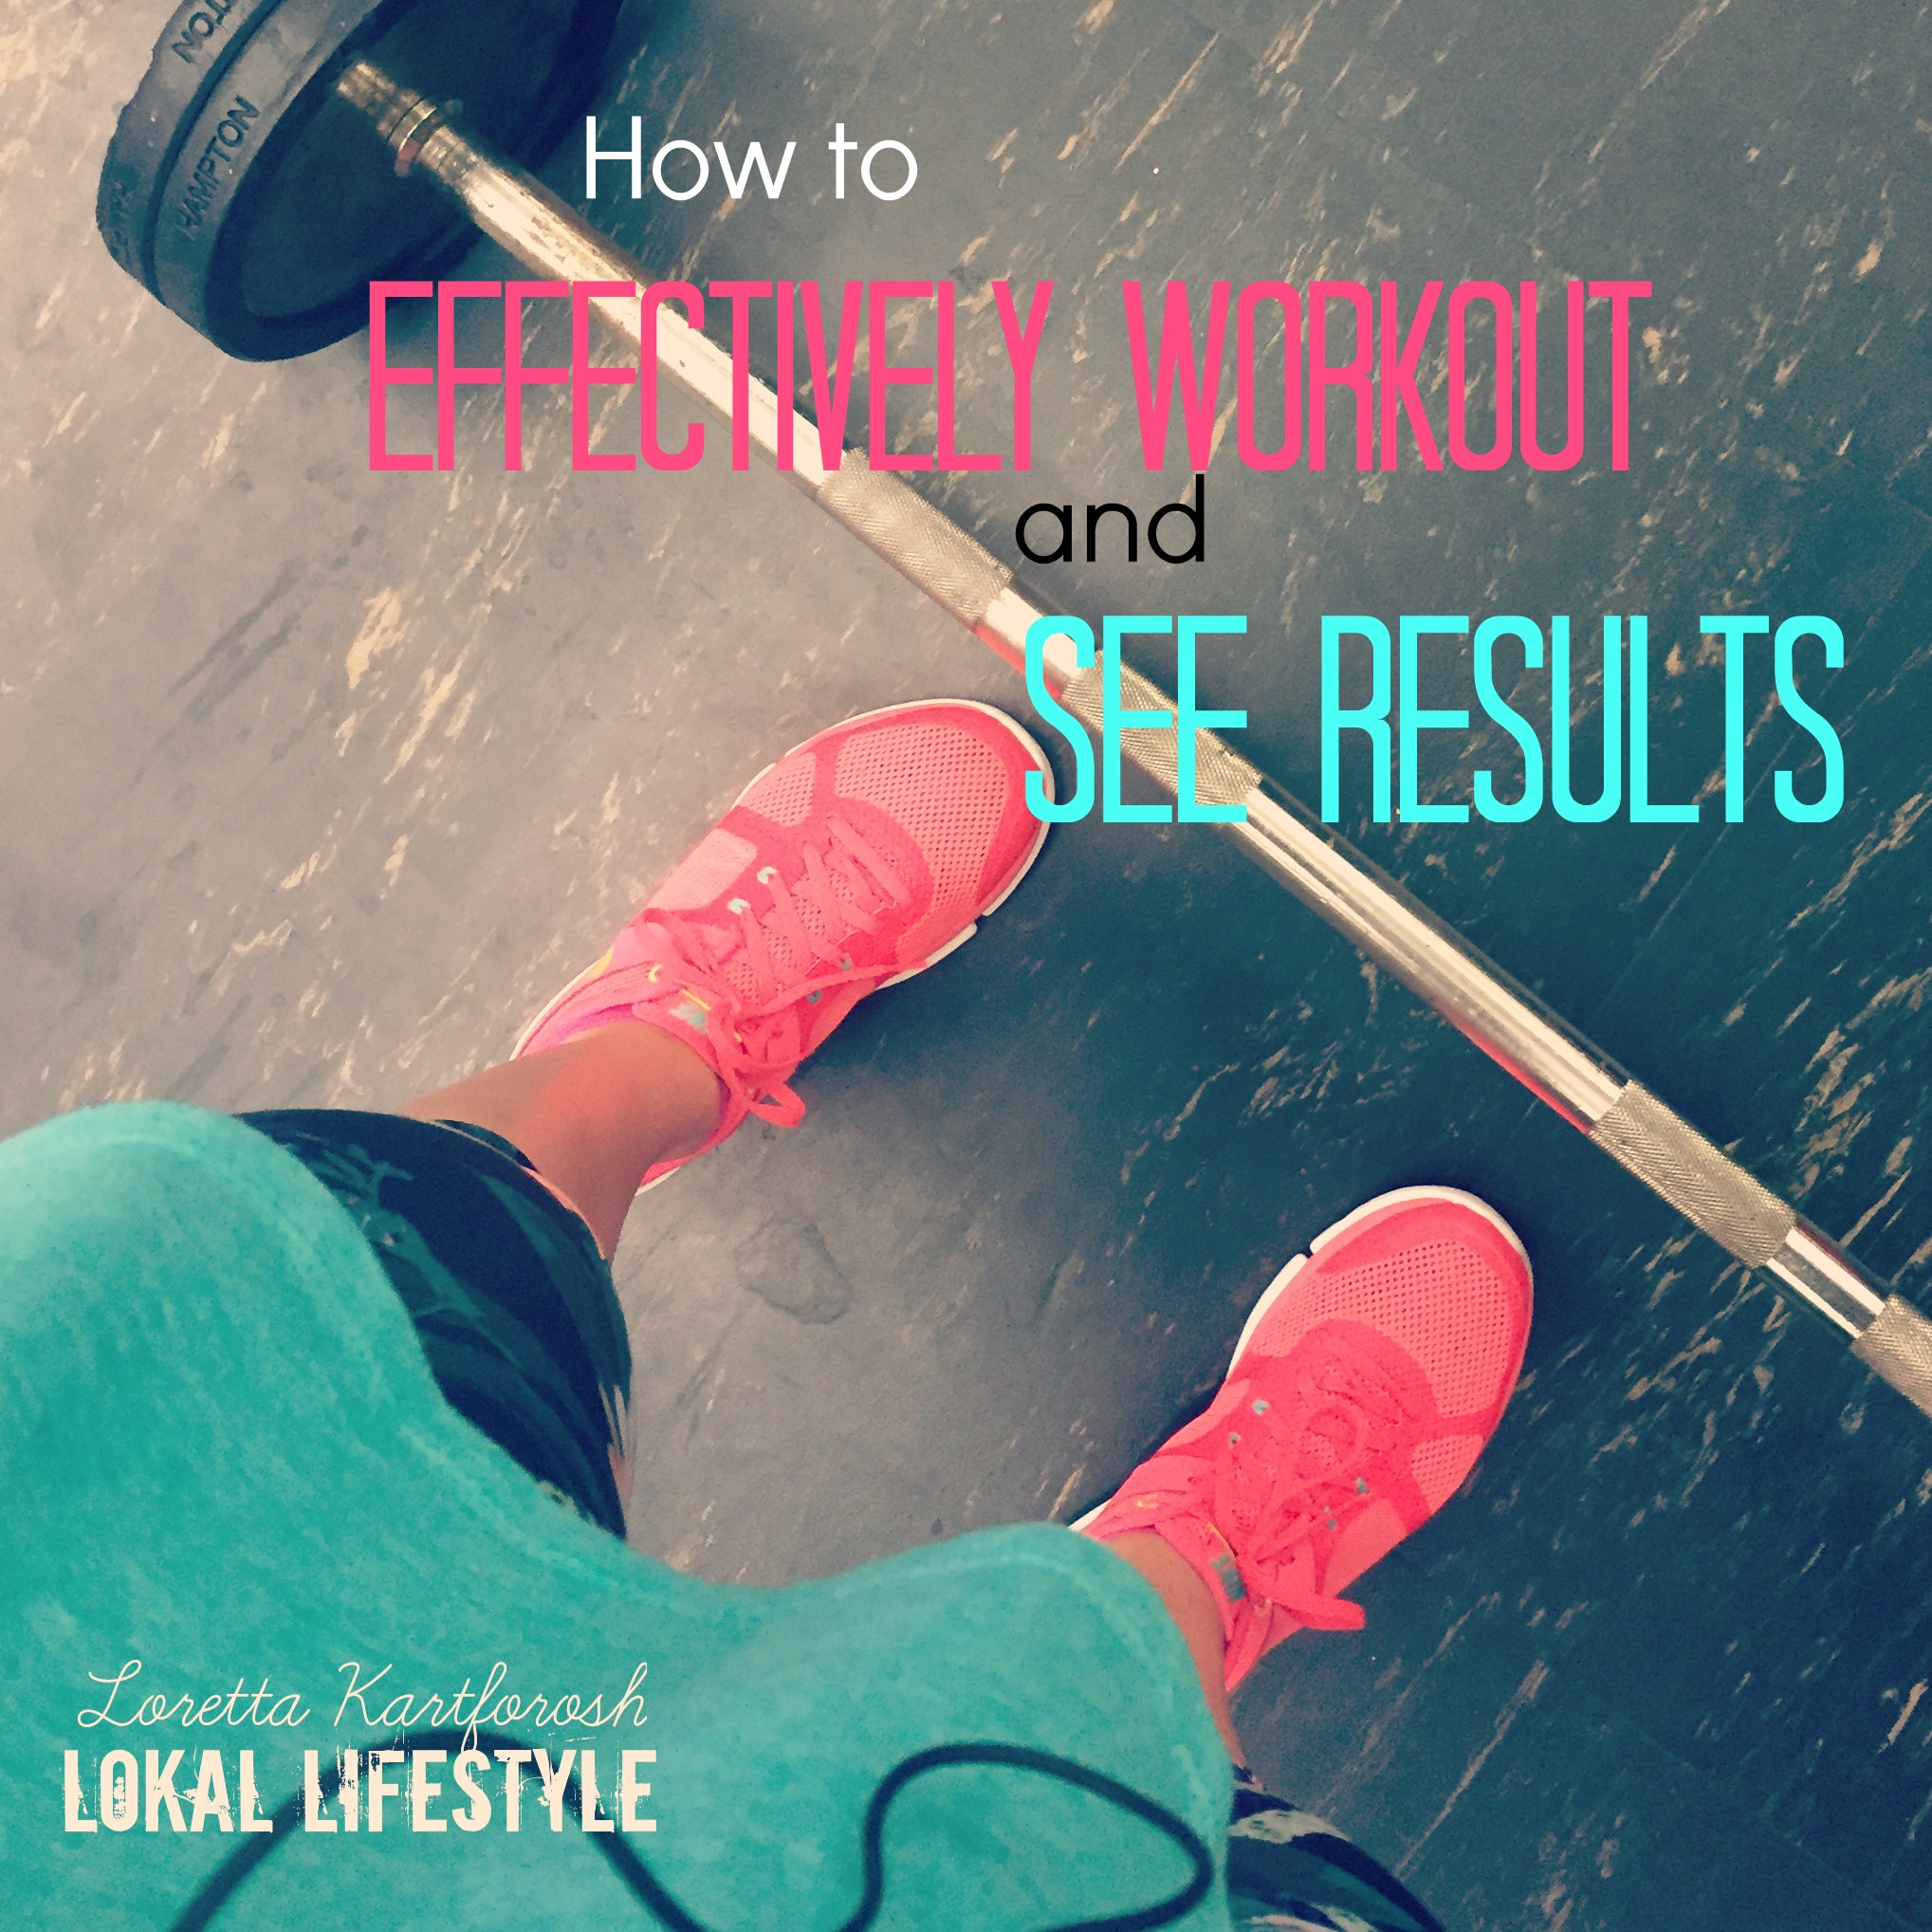 How to Effectively Workout and See Results